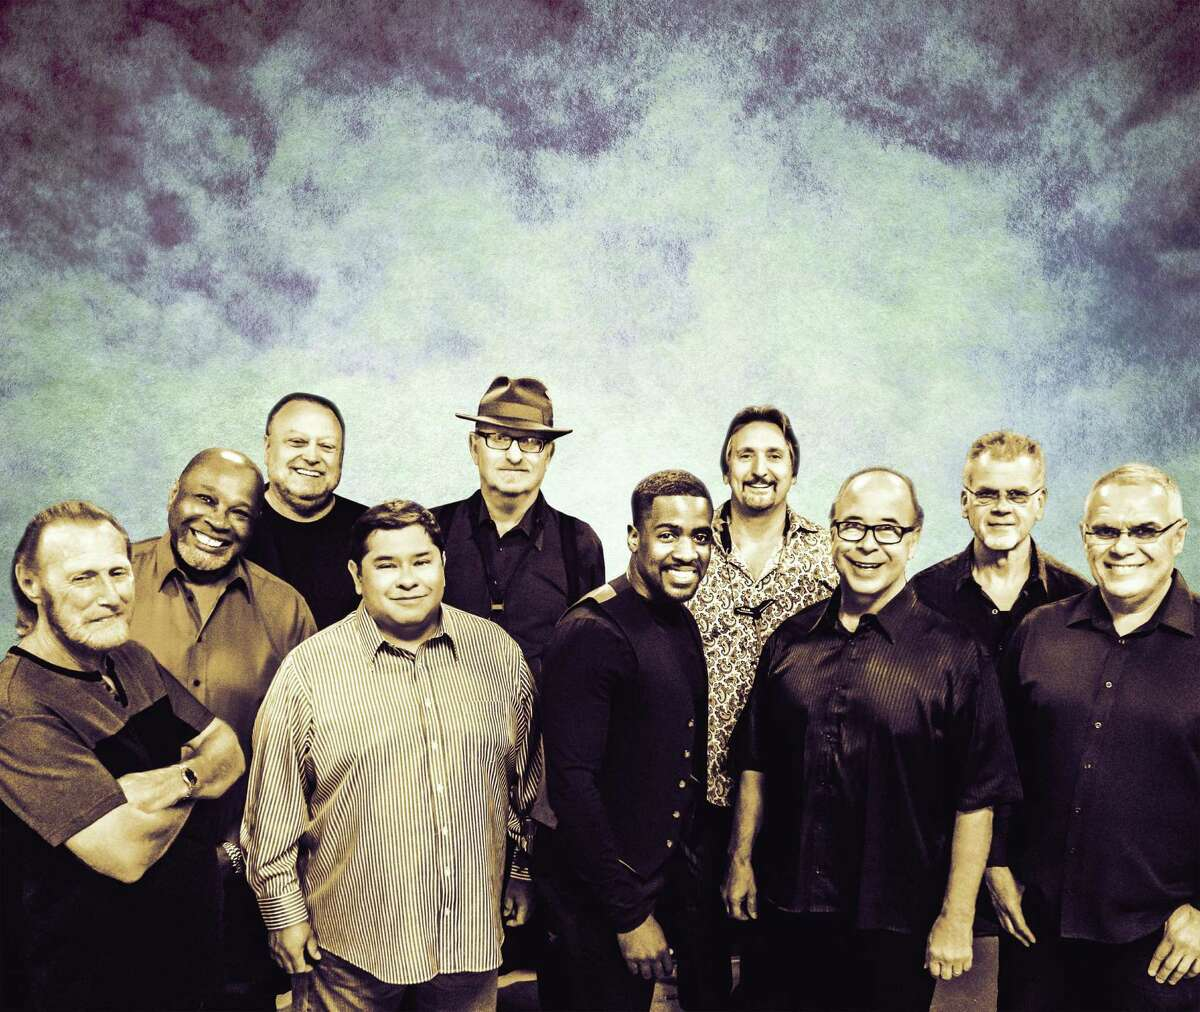 Tower of Power performs two New Year's Eve shows at Hartford's Infinity Hall on Saturday, Dec. 31.